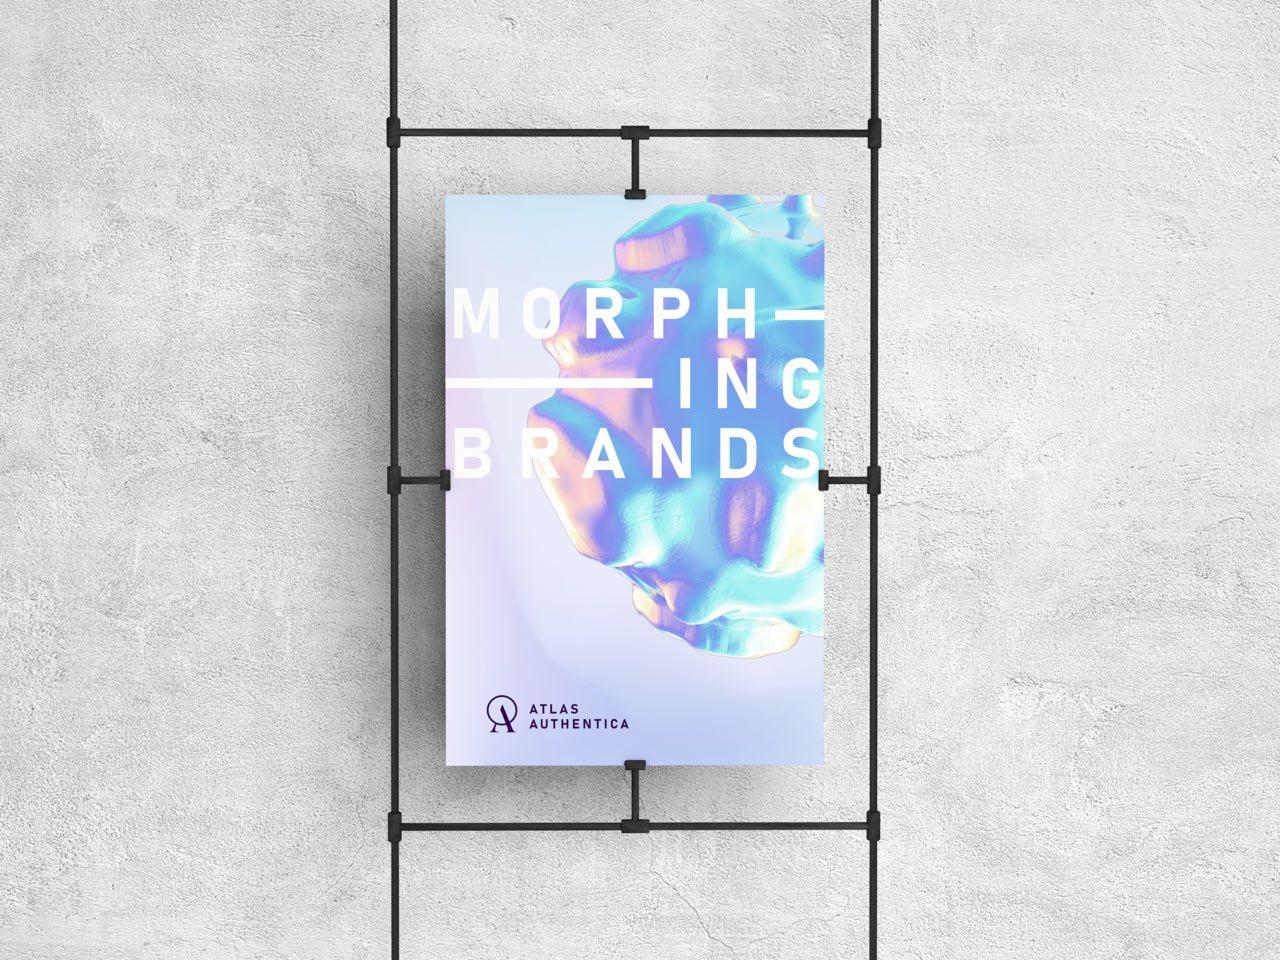 Atlas Authentica poster with our slogan: Morphing Brands